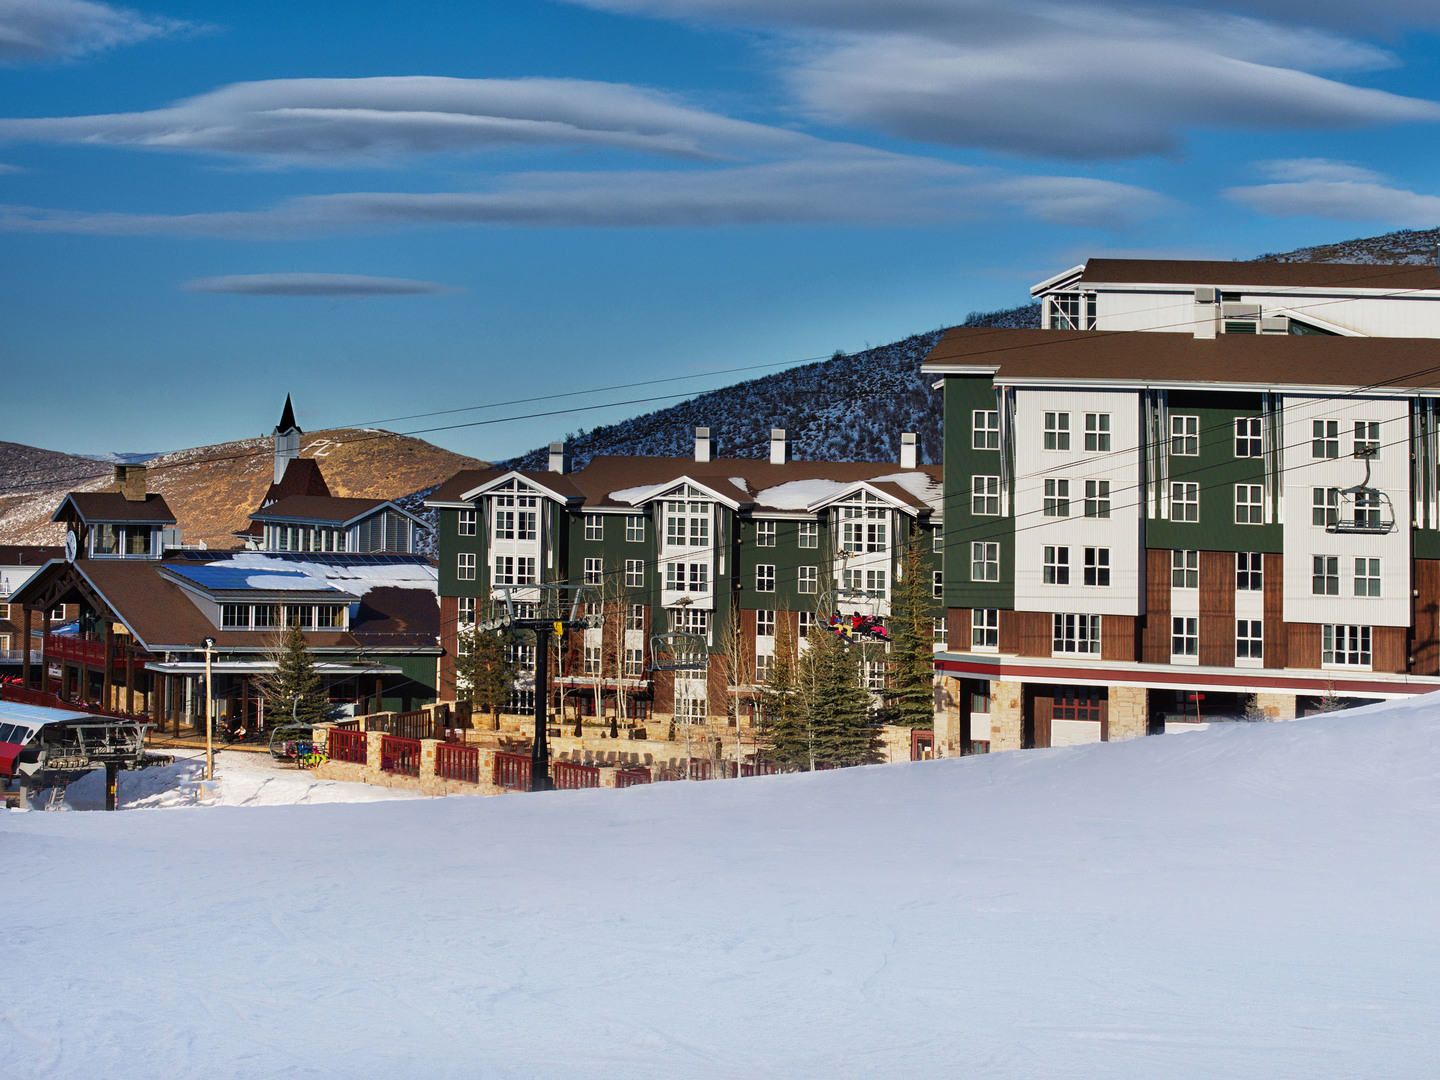 Marriott's MountainSide Exterior. Marriott's MountainSide is located in Park City, Utah United States.